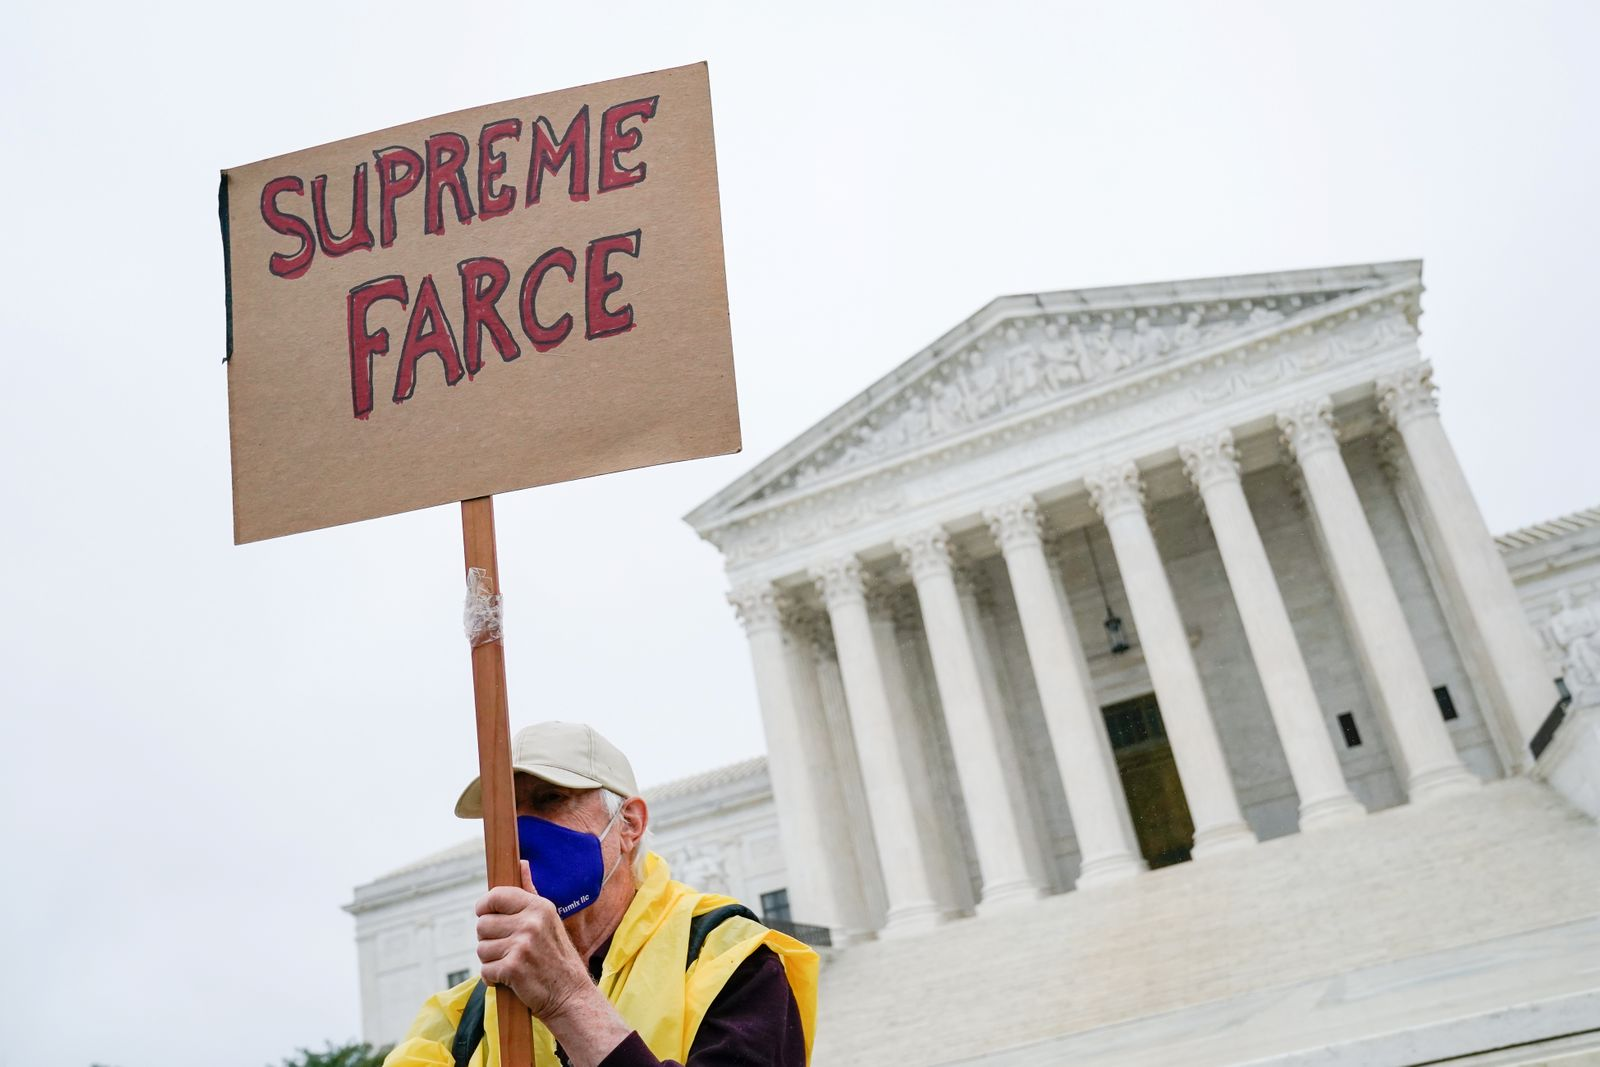 A protester against the Supreme Court nomination of Judge Amy Coney Barrett demonstrates outside the U.S. Supreme Court in Washington